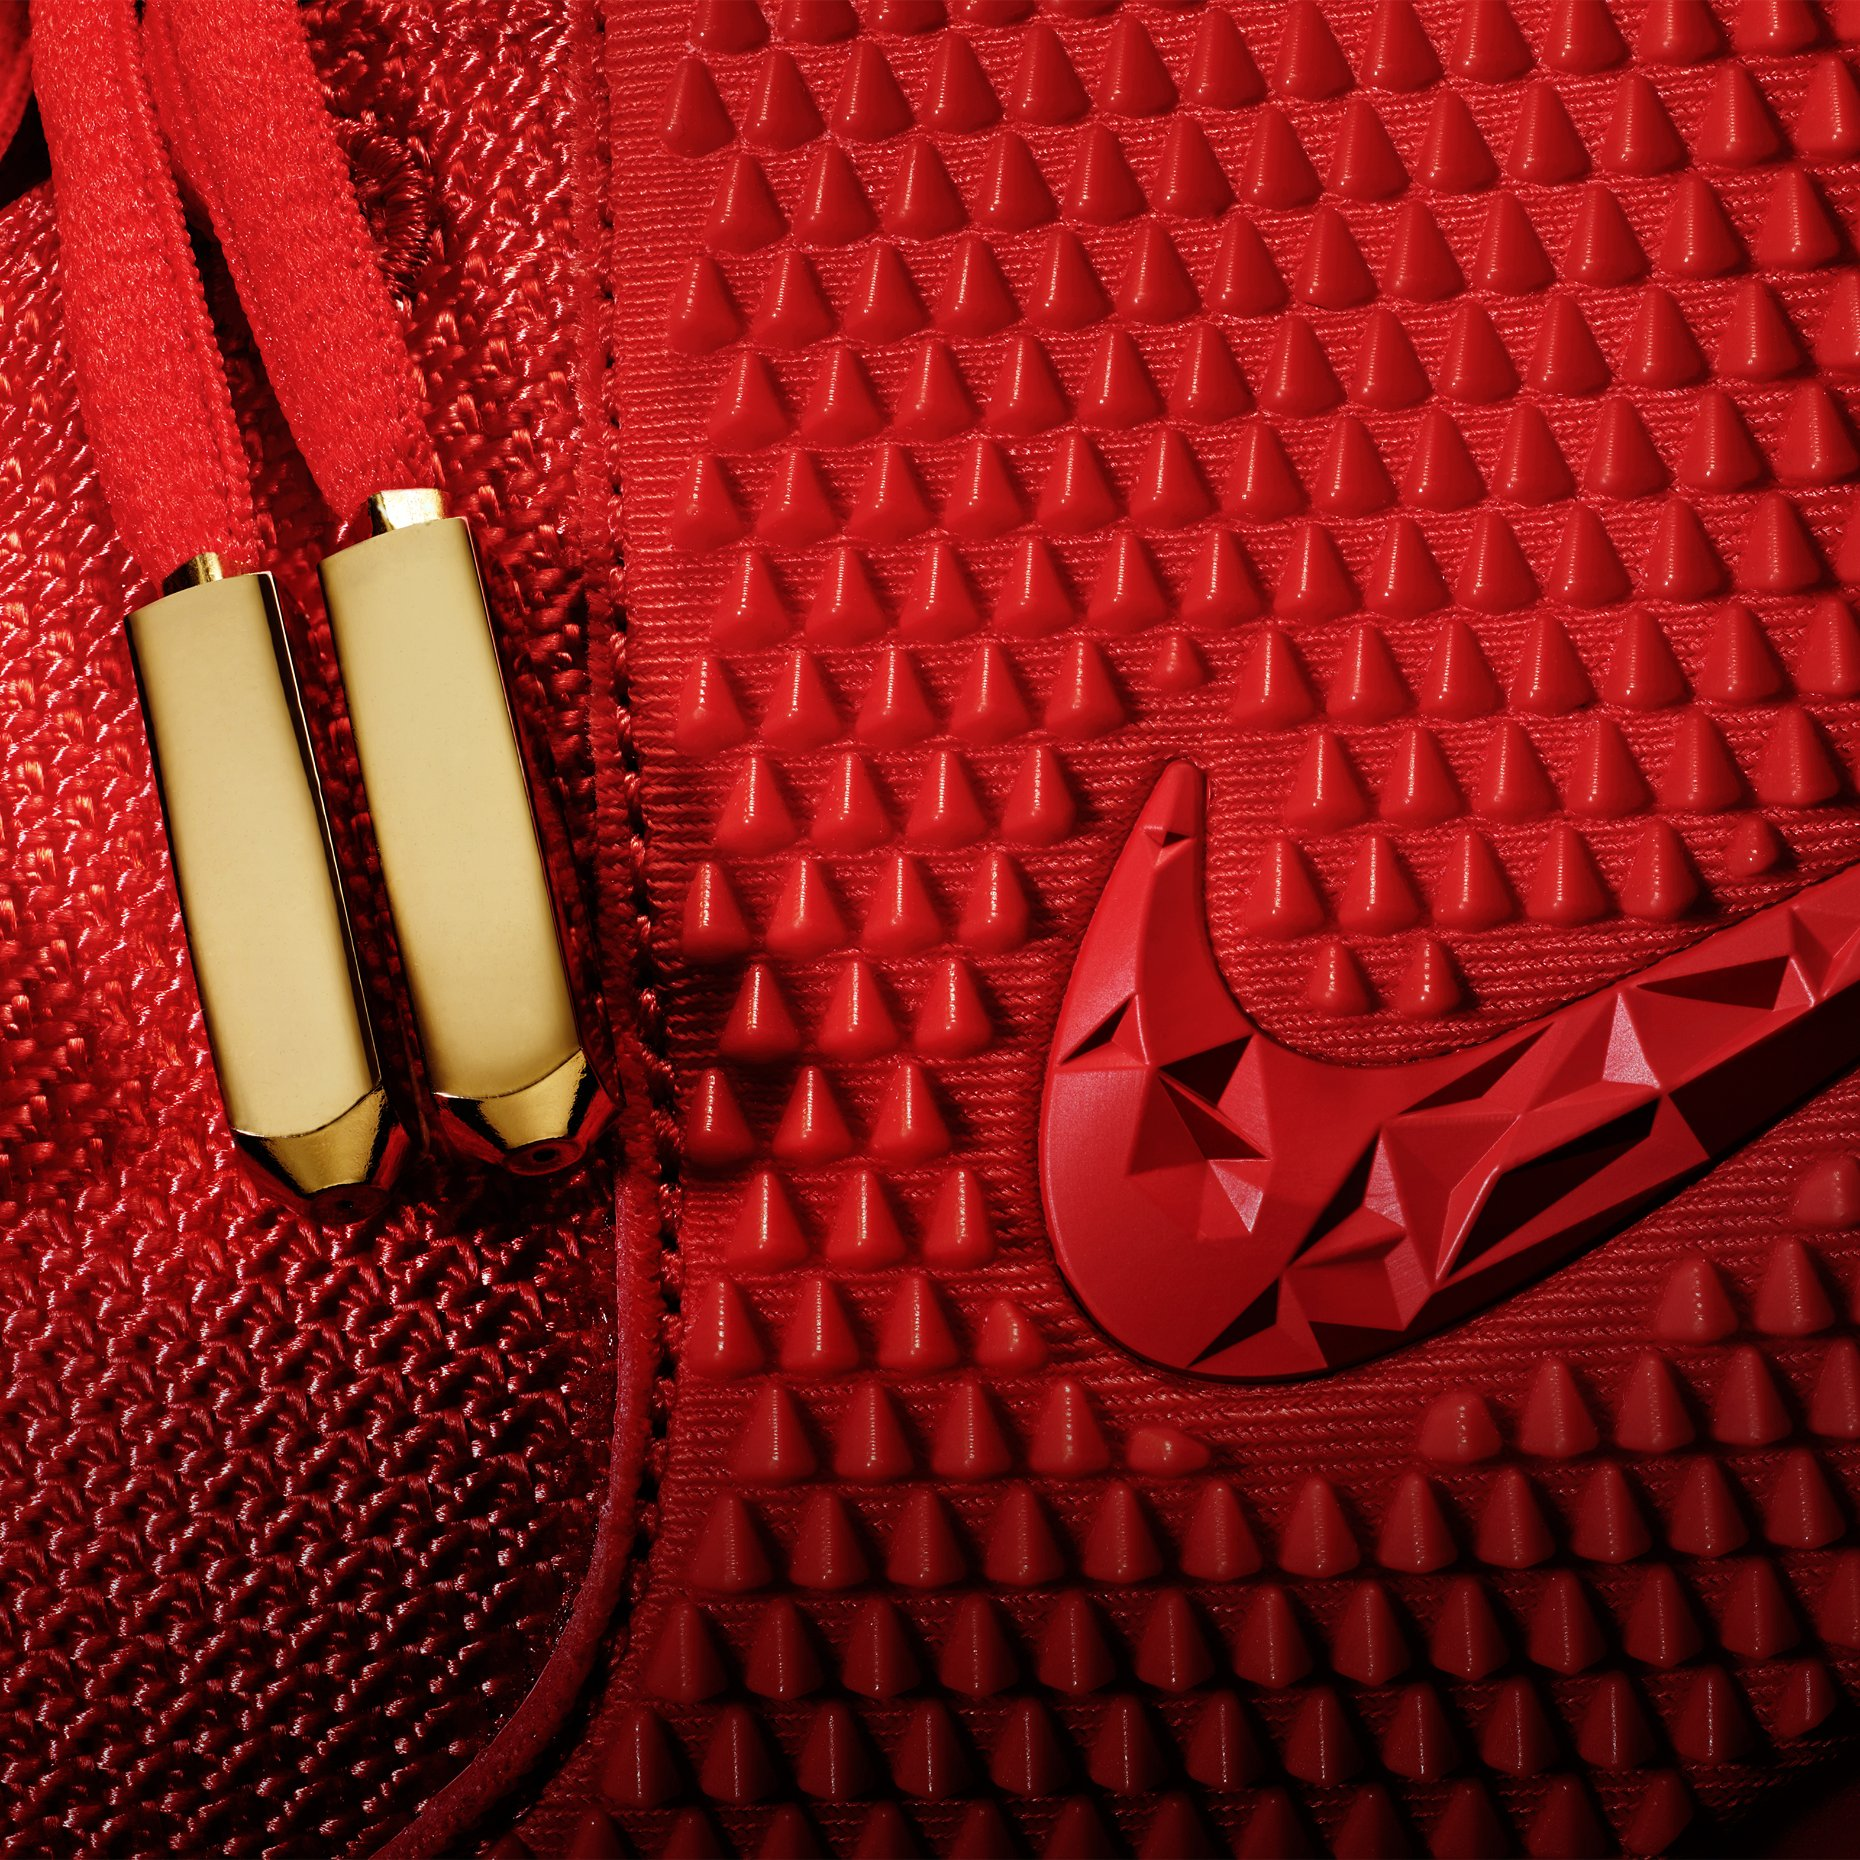 Nike Air Yeezy II Valentines Day SOLD OUT   Inside The Sneakerbox 1860x1860